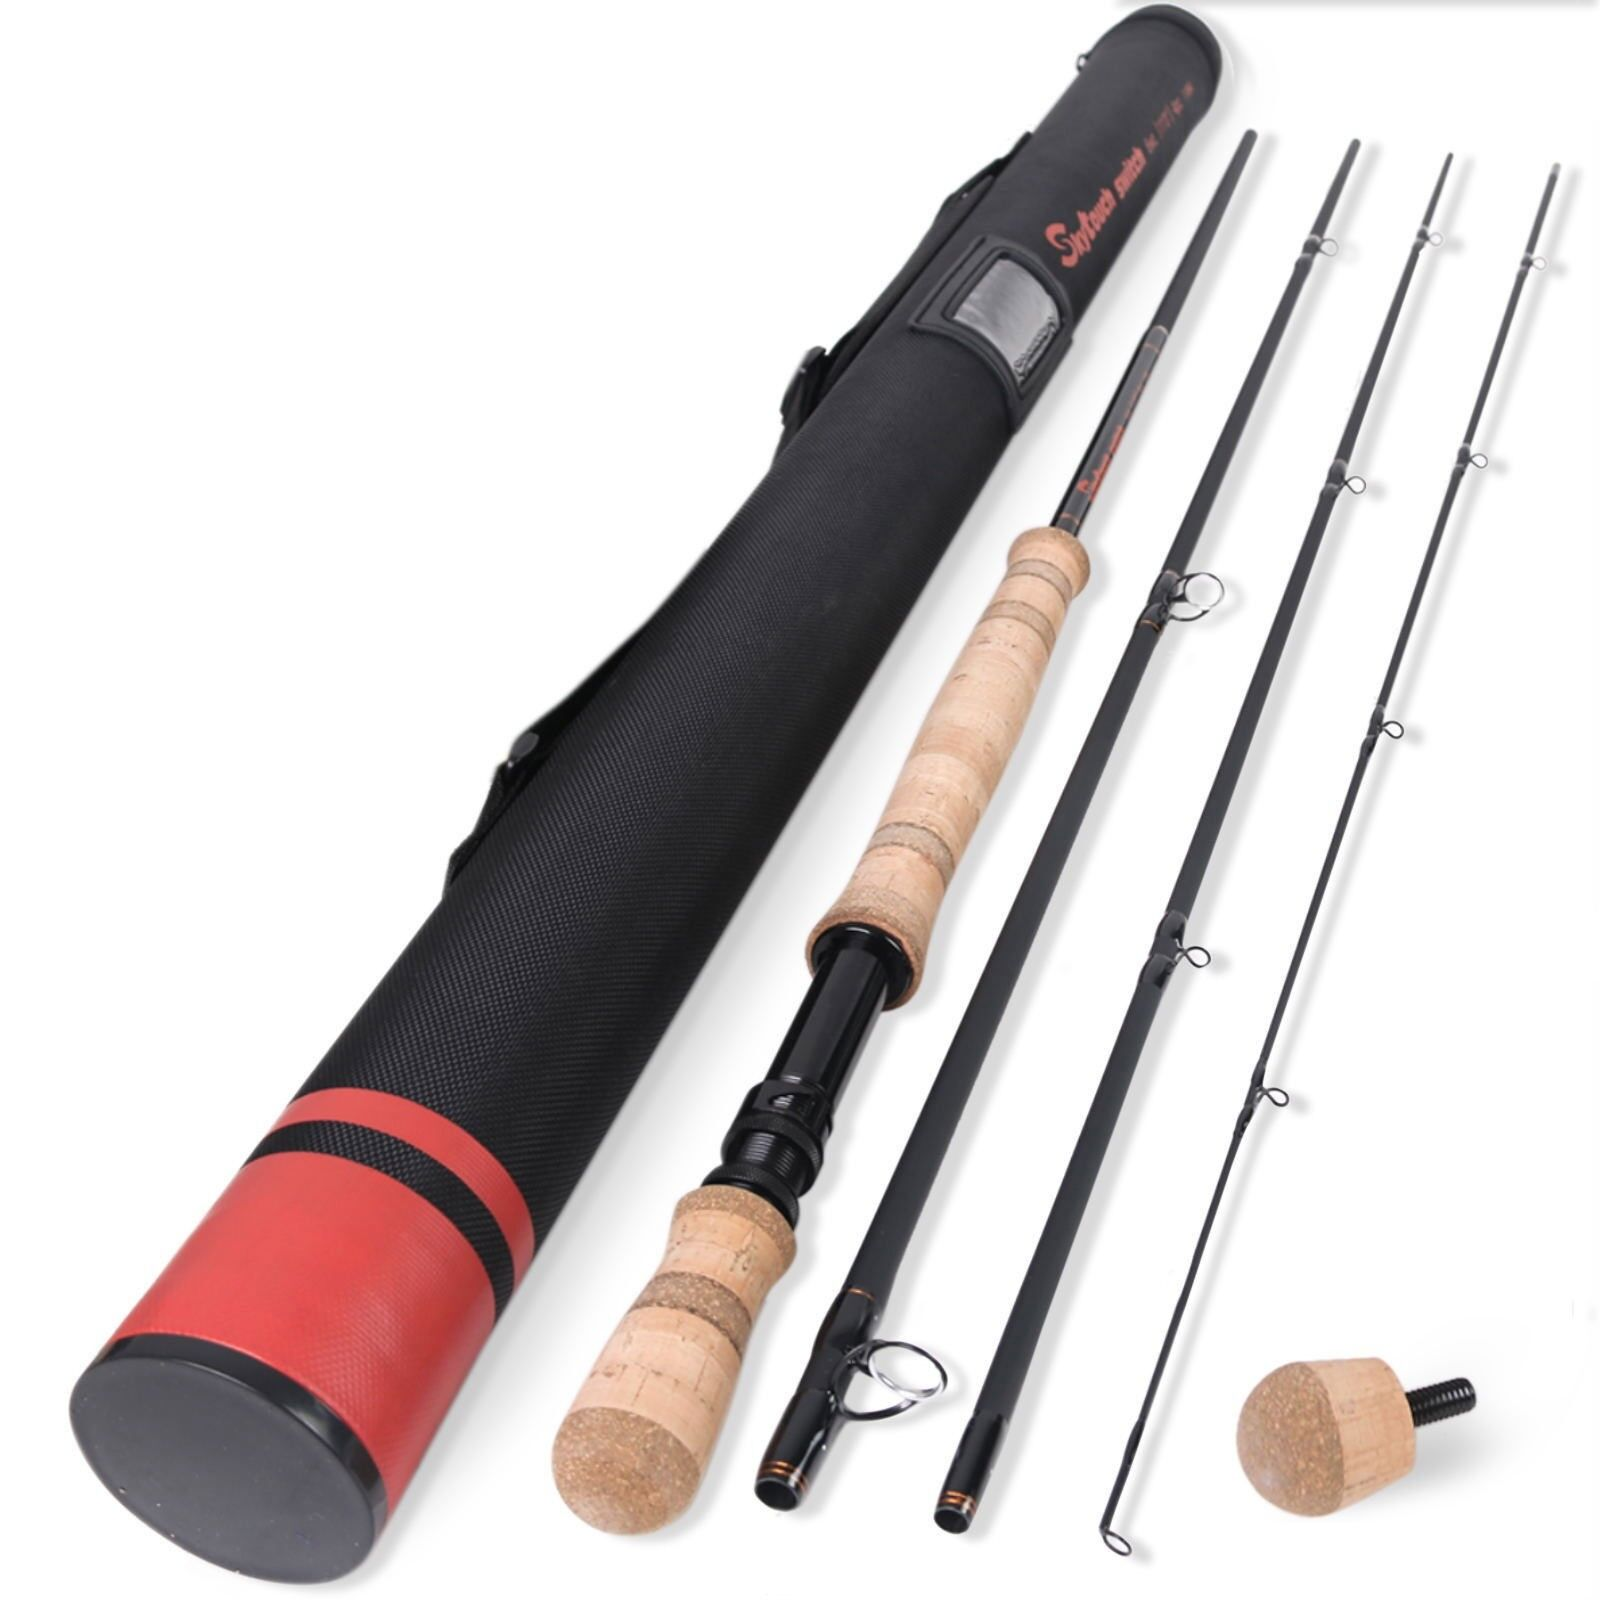 Skytouch Two-handed Switch Spey Fly Fishing Rods Rods Rods Fast Action IM10 Carbon Blank b23c81